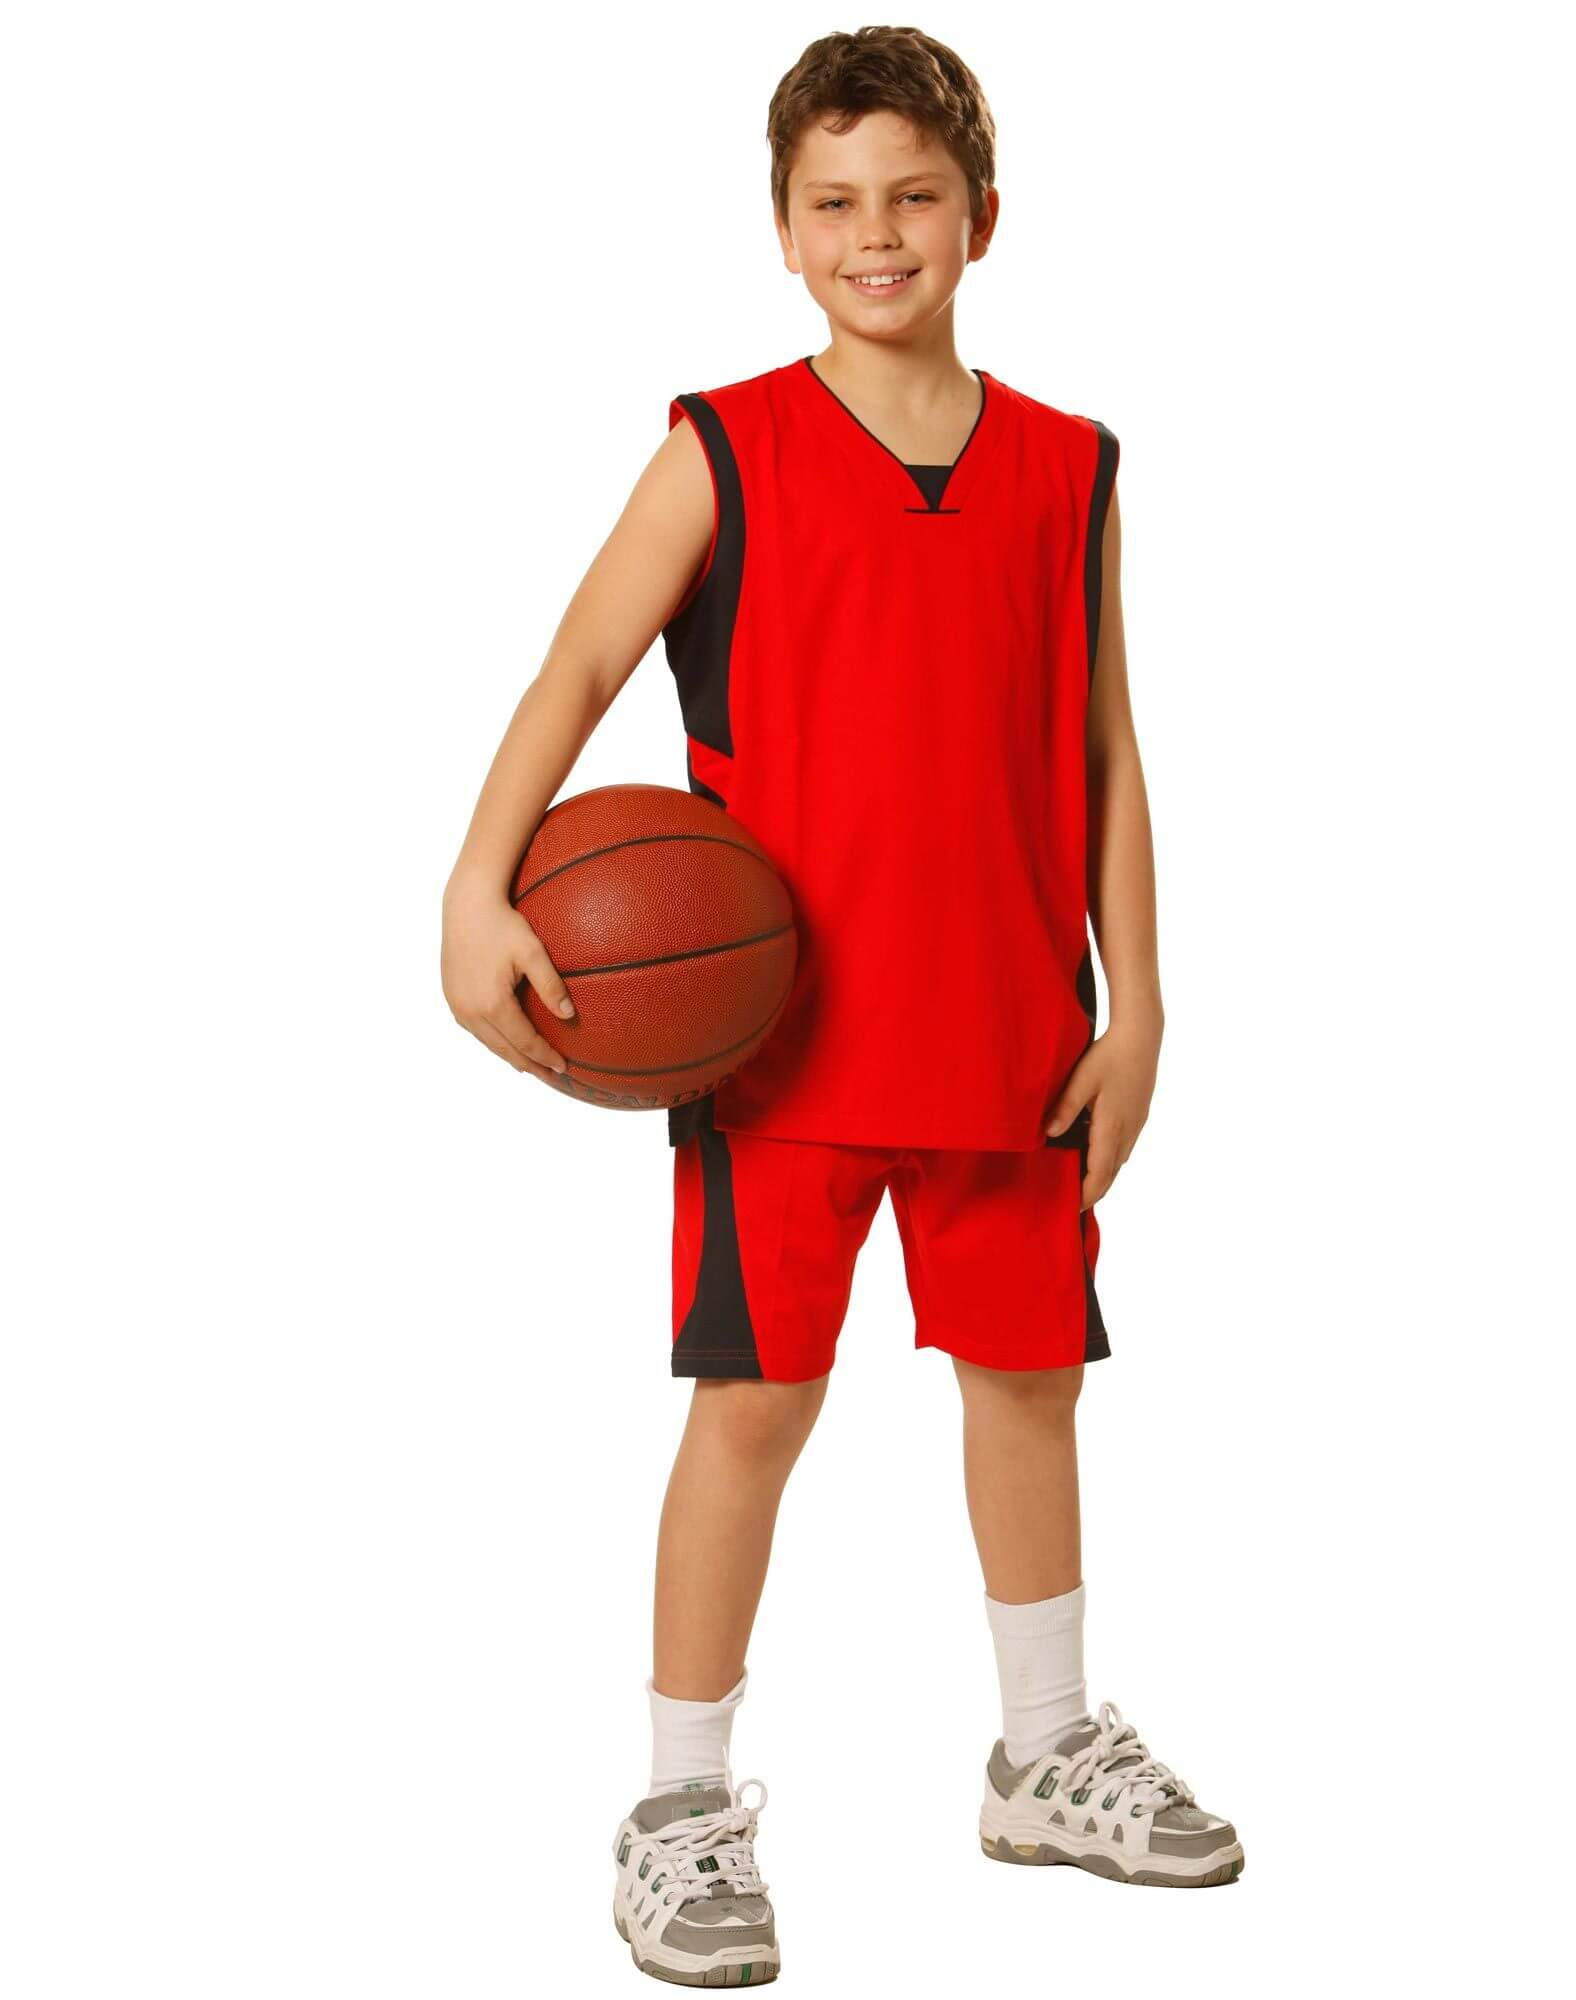 Kids Basketball Jerseys Manufacturers in Croatia